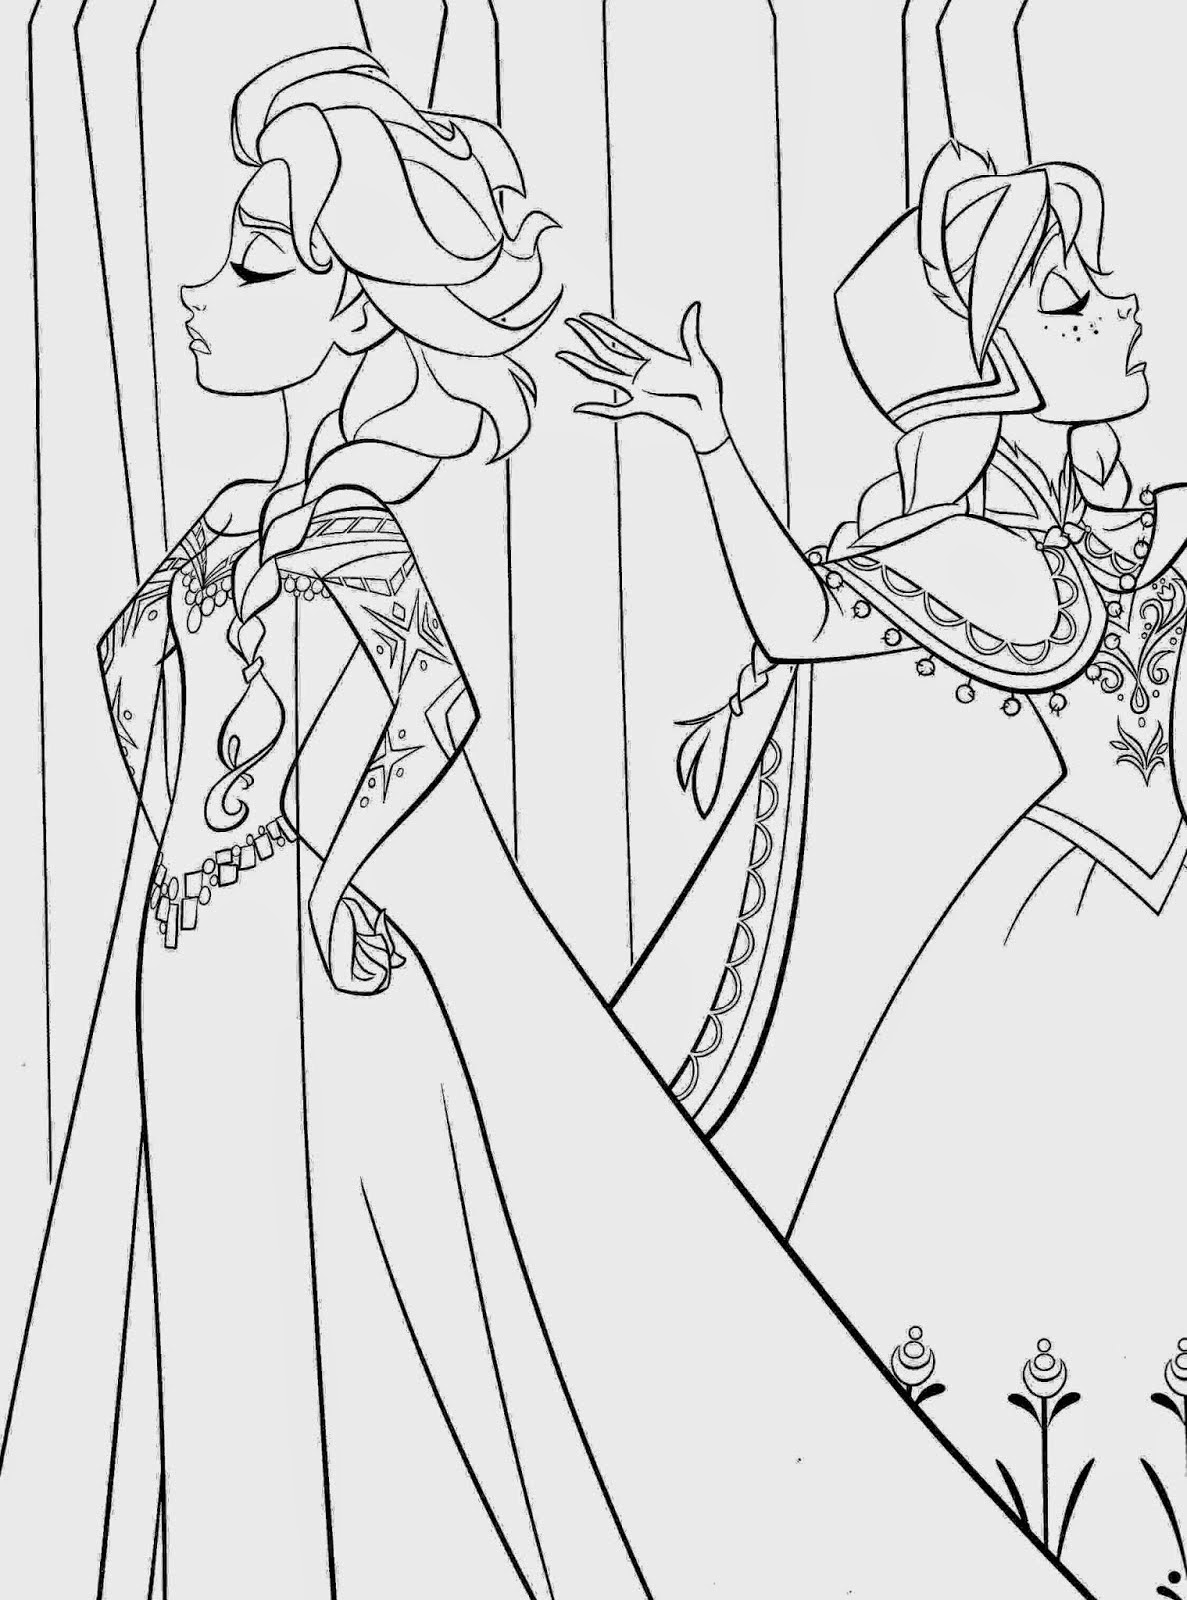 anna and elsa frozen coloring pages pin on shrinky dink elsa anna frozen coloring pages and